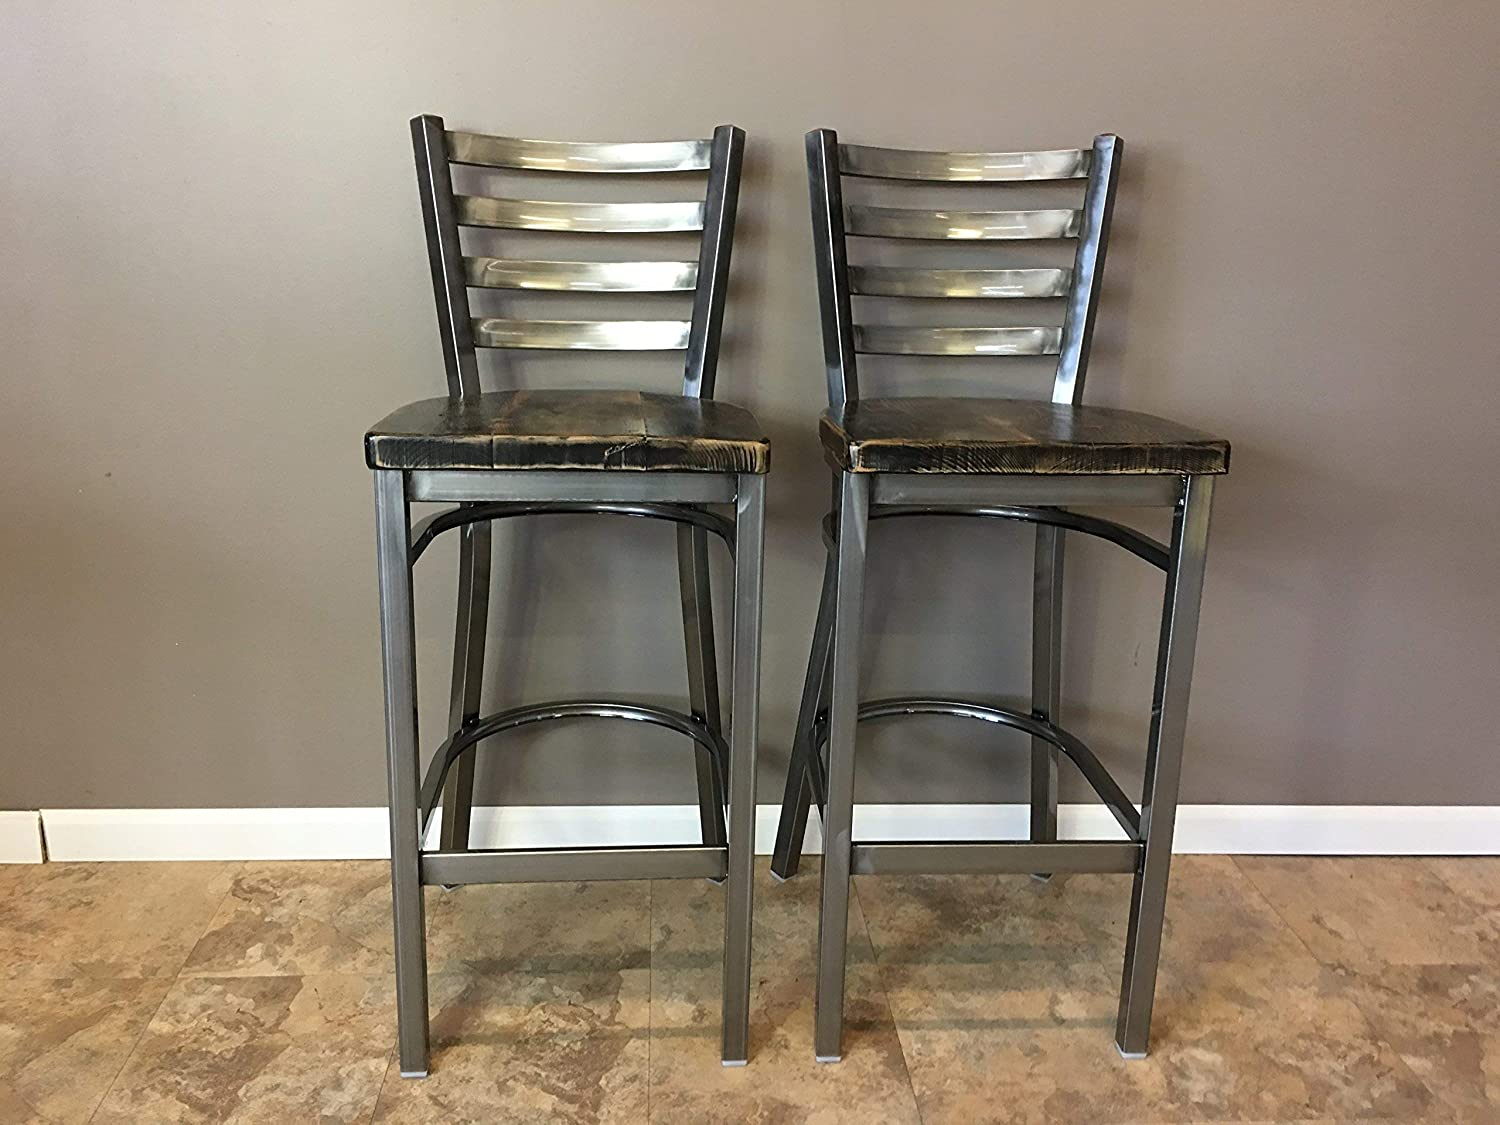 Awe Inspiring Reclaimed Wood Seat Bar Stool Set Of 2 With Gun Metal Gray Ladder Back Metal Frame Restaurant Grade High Quality 30 Inch High Barstool Pdpeps Interior Chair Design Pdpepsorg